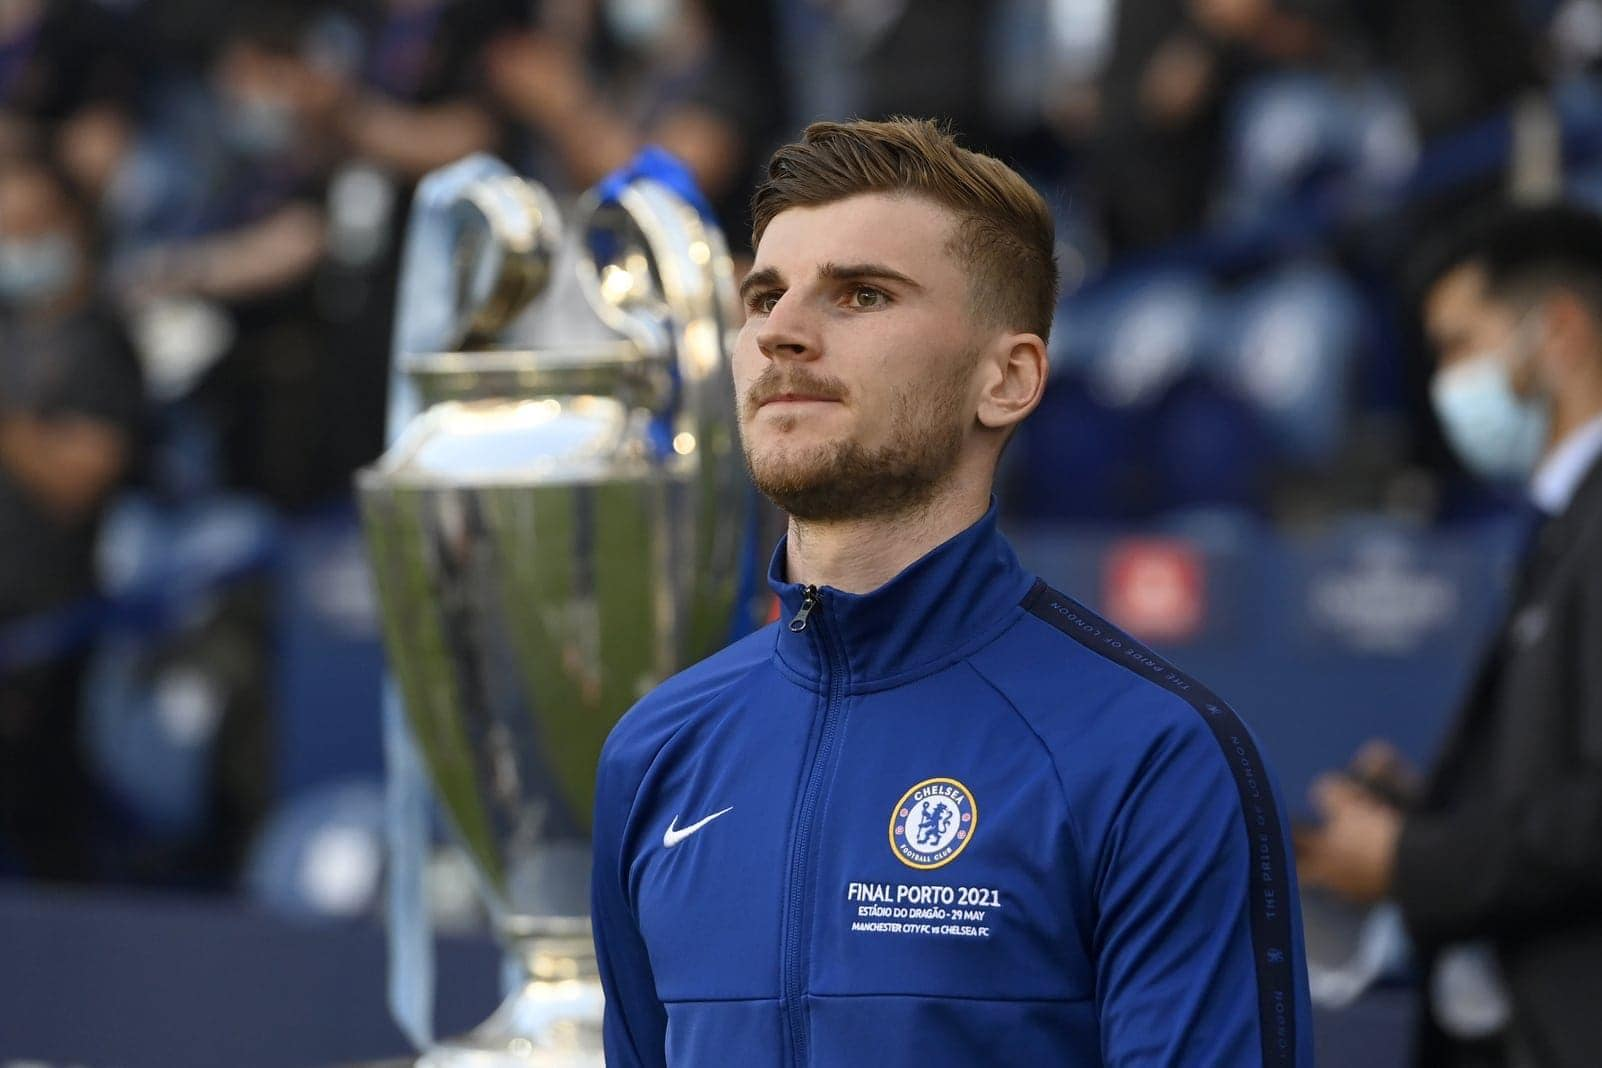 Manchester City - FC Chelsea Timo Werner Pokal